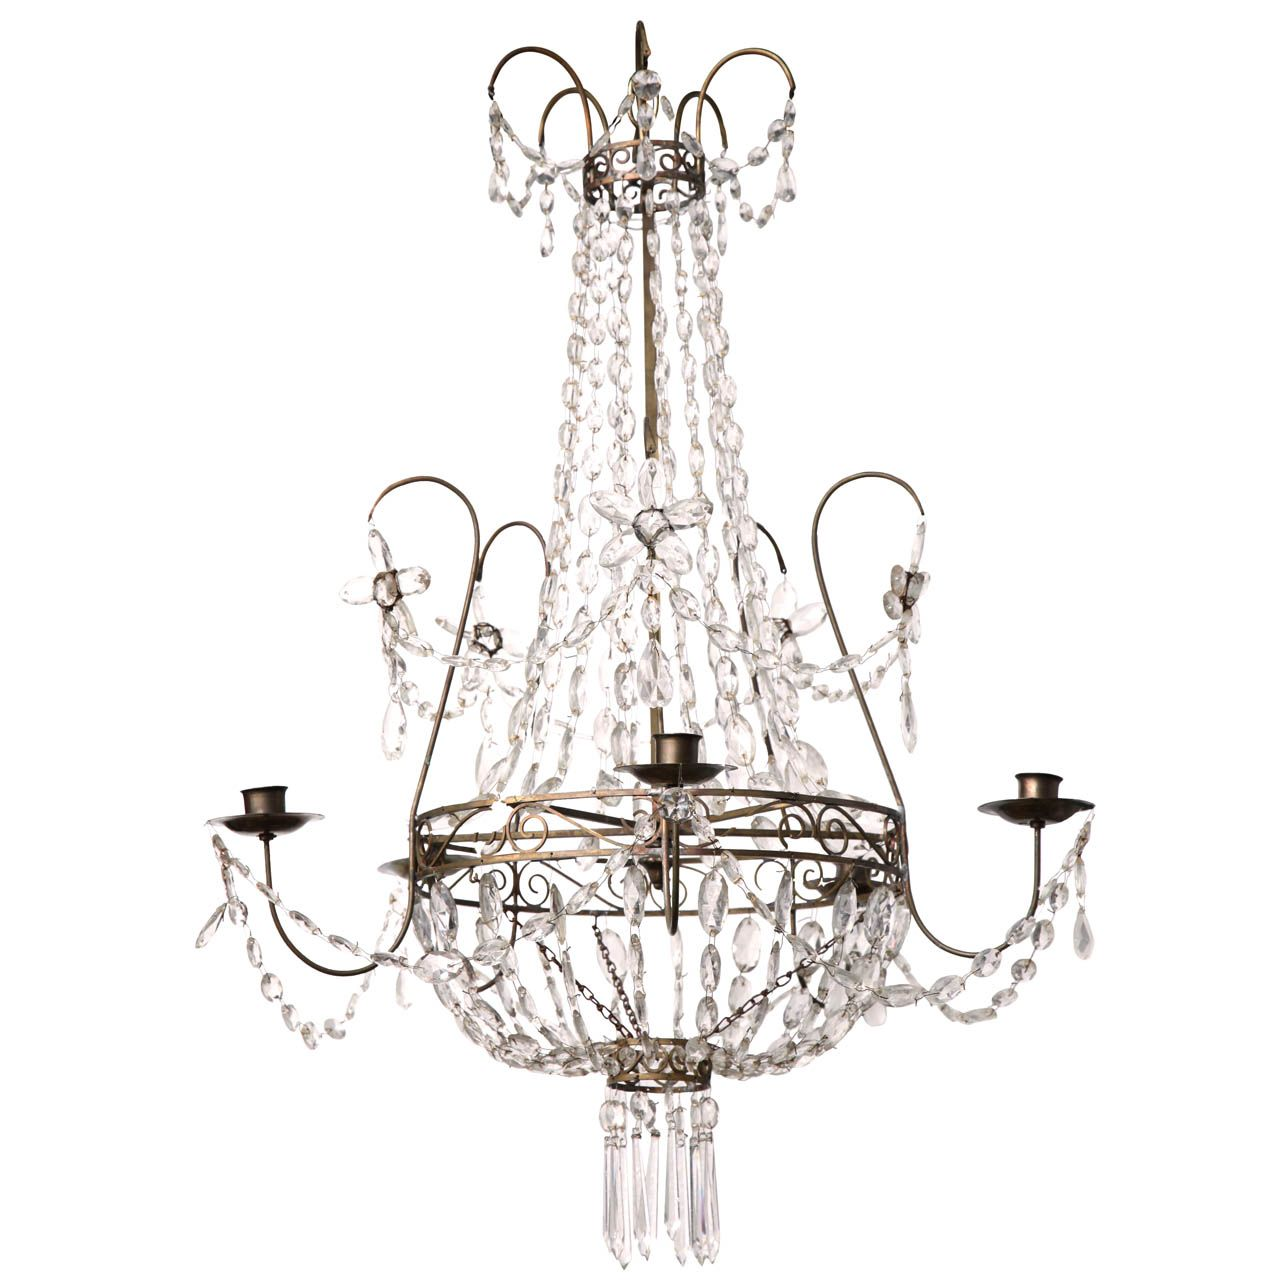 Early 19th century swedish crystal chandelier chandeliers pendant early 19th century swedish crystal chandelier from a unique collection of antique and modern chandeliers arubaitofo Image collections